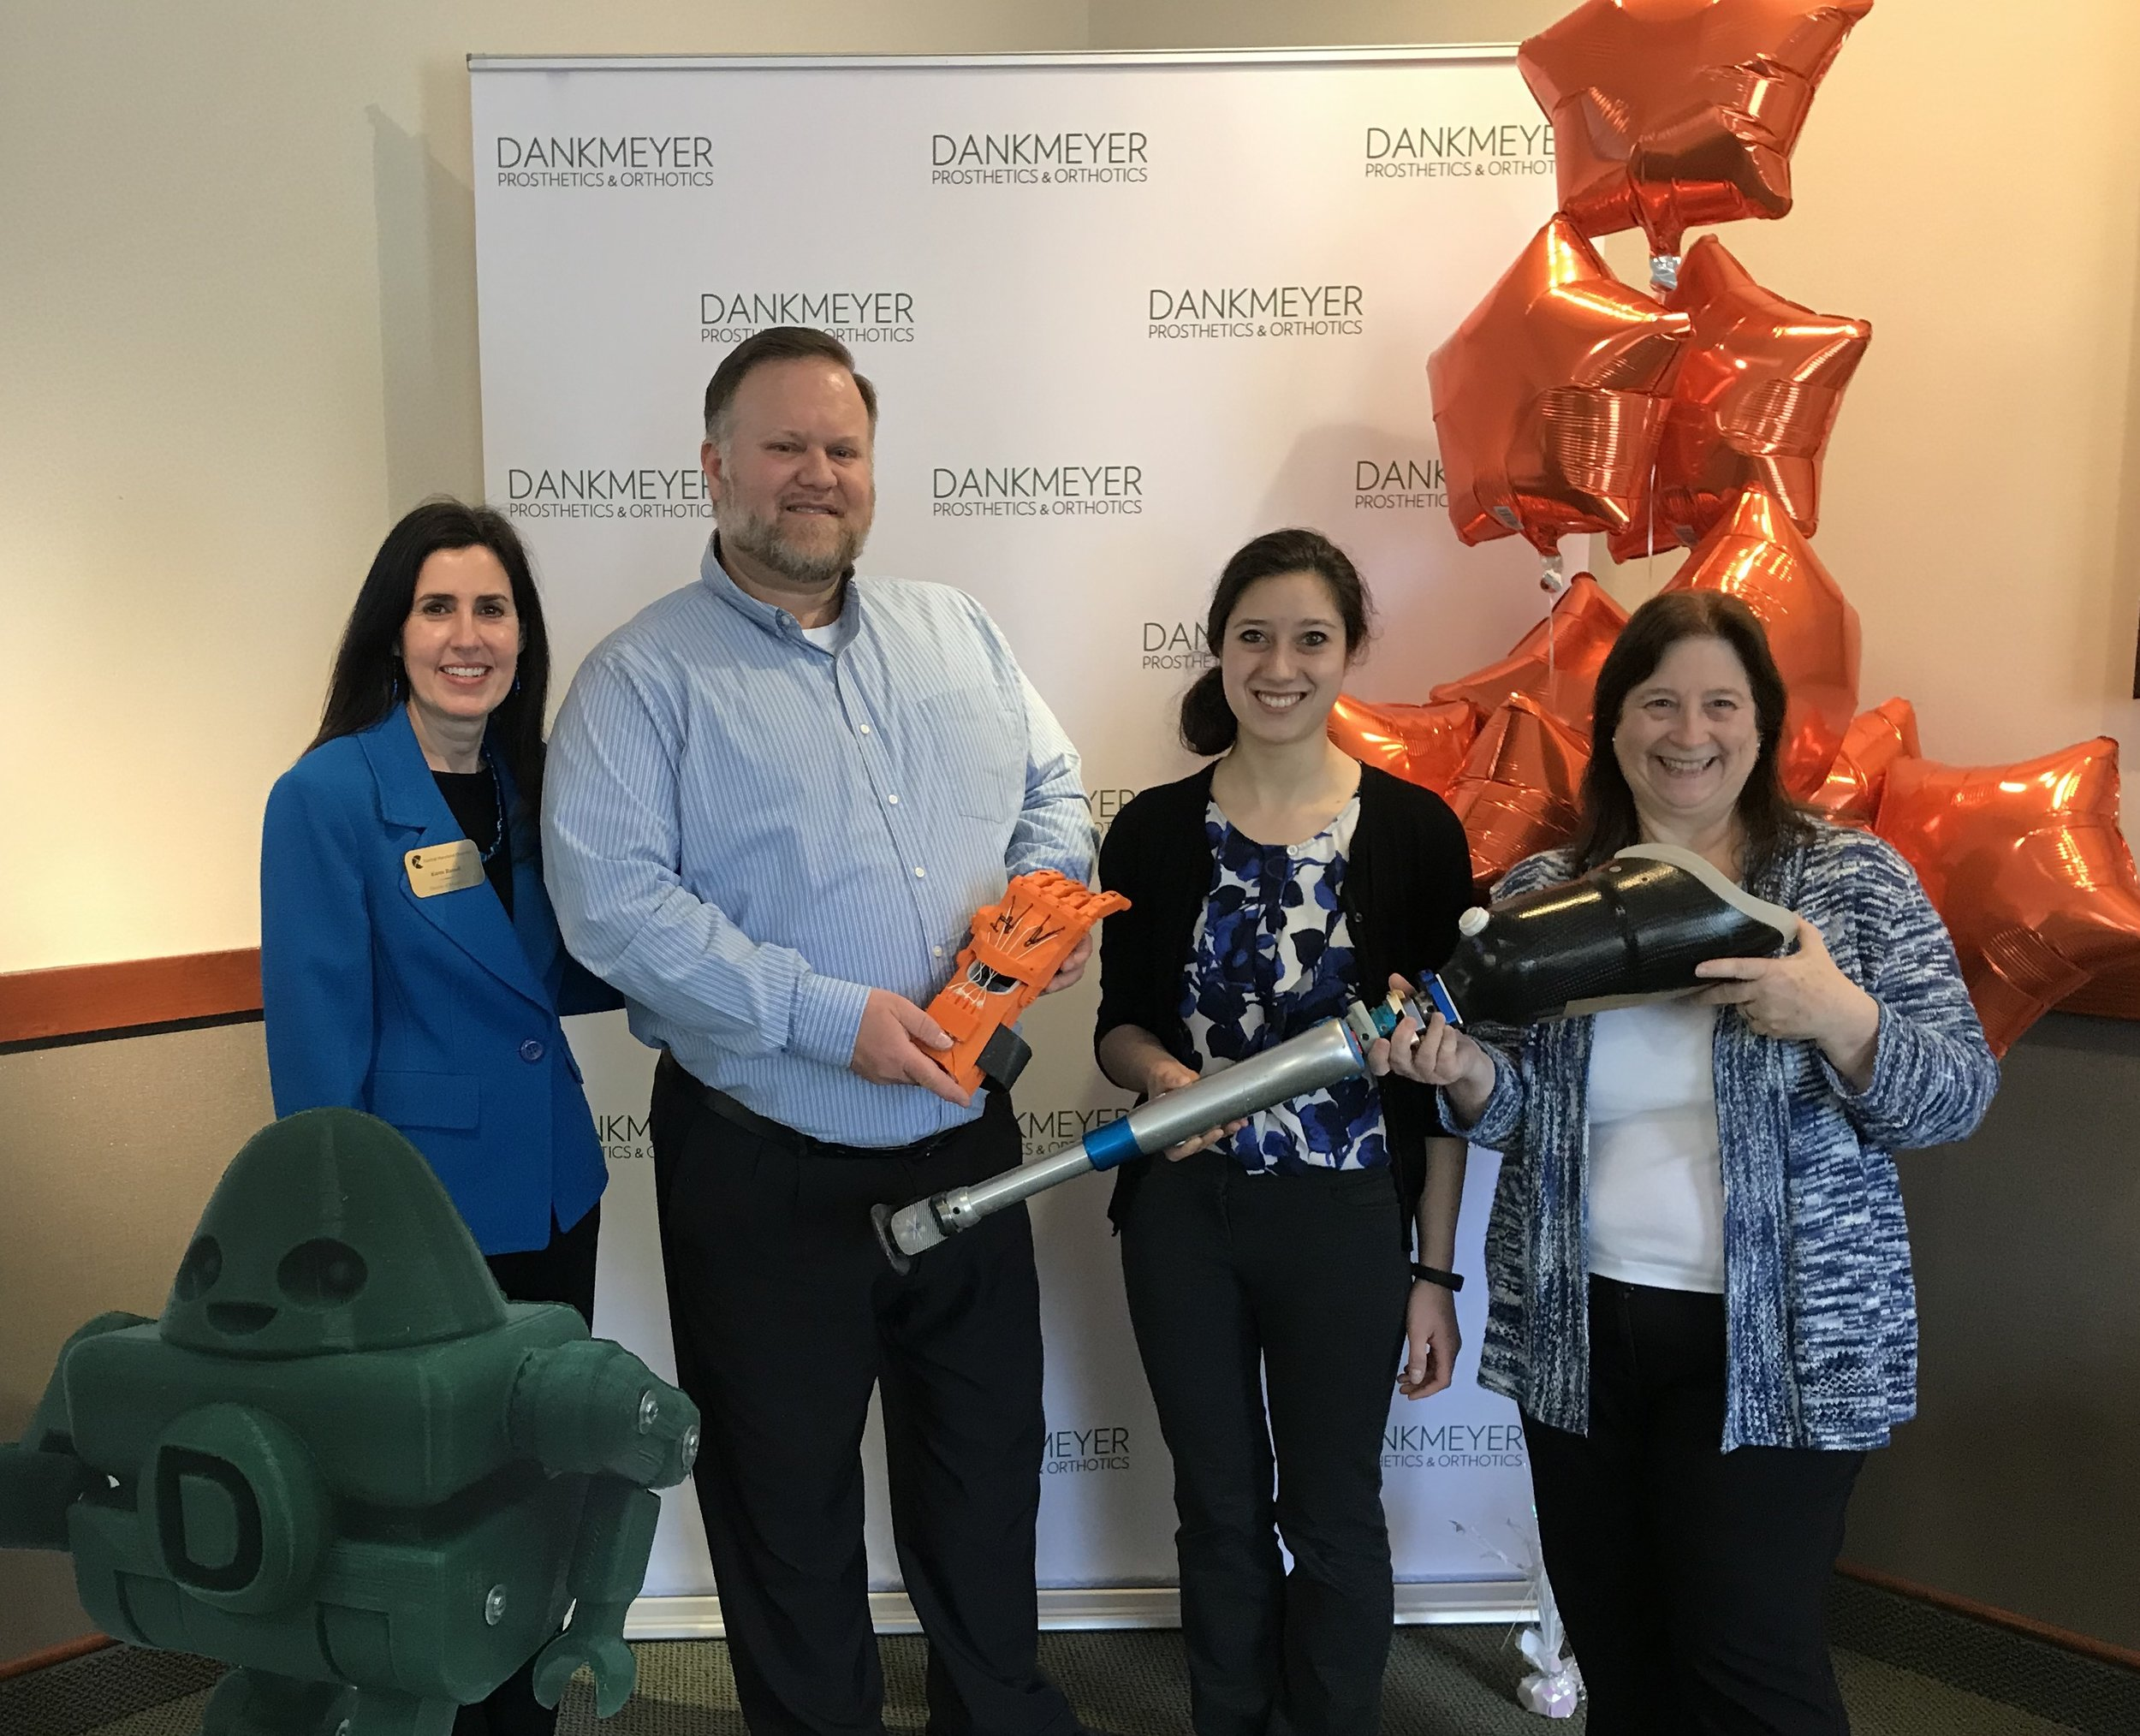 Karen Russell. with the Central Maryland Chamber of Commerce, along with Robb Brown, Rochelle Dumm and Barbara Delorenzo, kick off Limb Loss Awareness month at Dankmeyer.